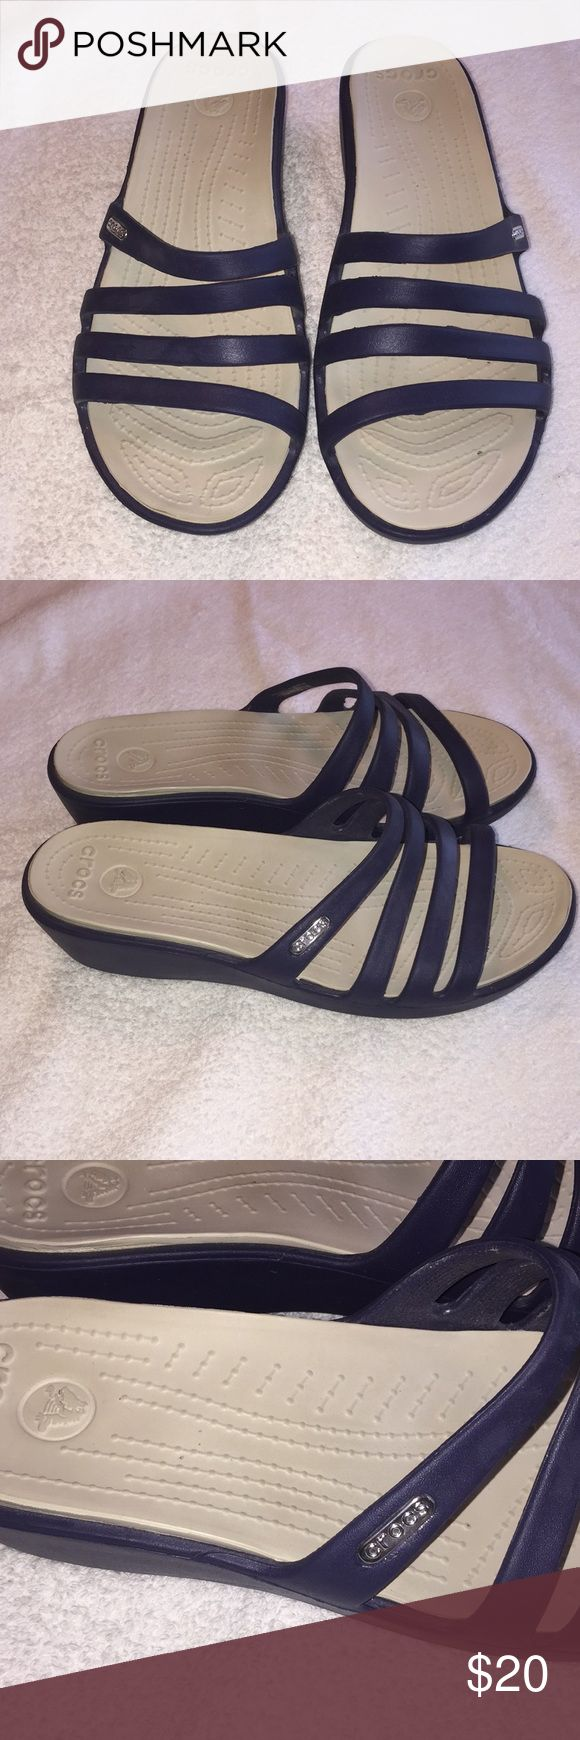 Women's Crocs brand sandals size 8. Women's Crocs brand sandals size 8. They have been worn once and are in good shape. They are navy blue in color. If you have any questions please let me. Thanks! CROCS Shoes Sandals